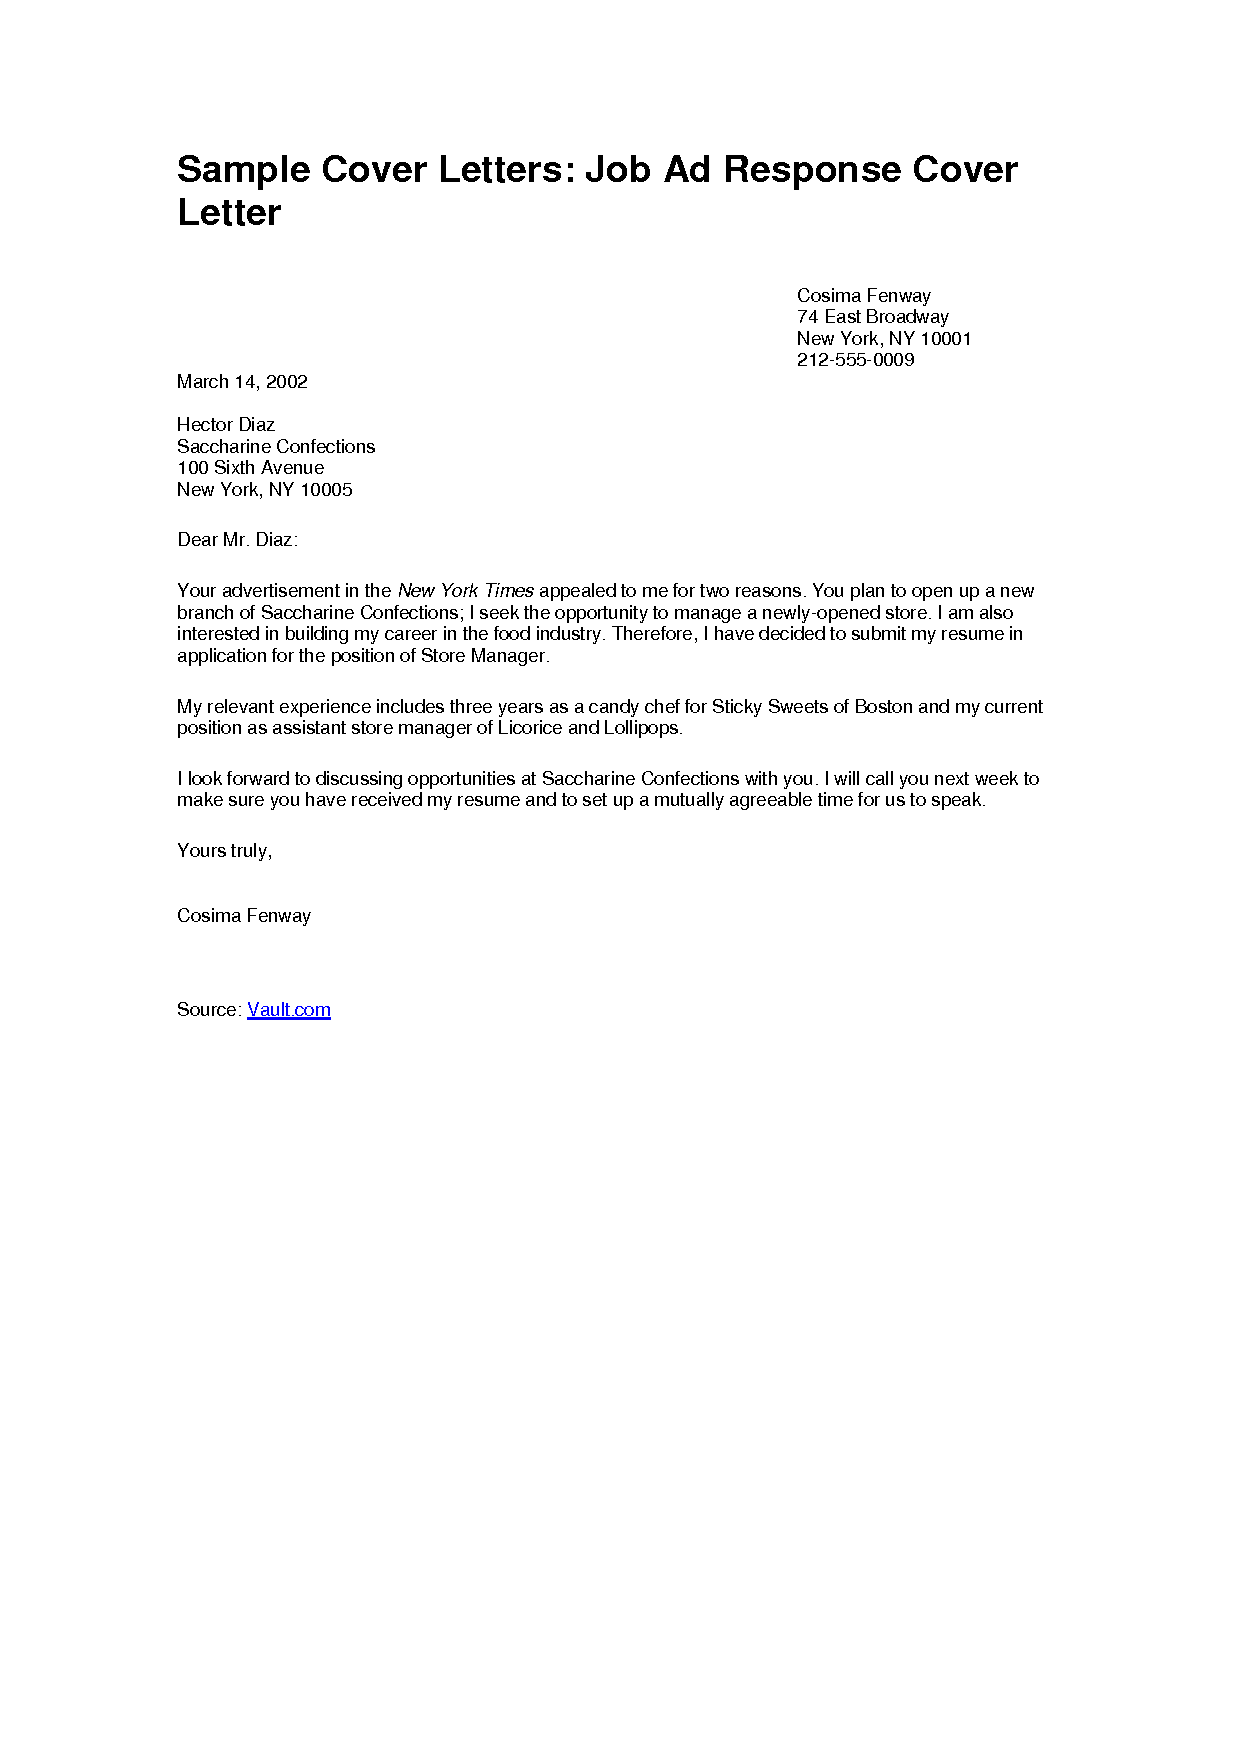 example cover letter for job simple application cover letter examples wedding 21543